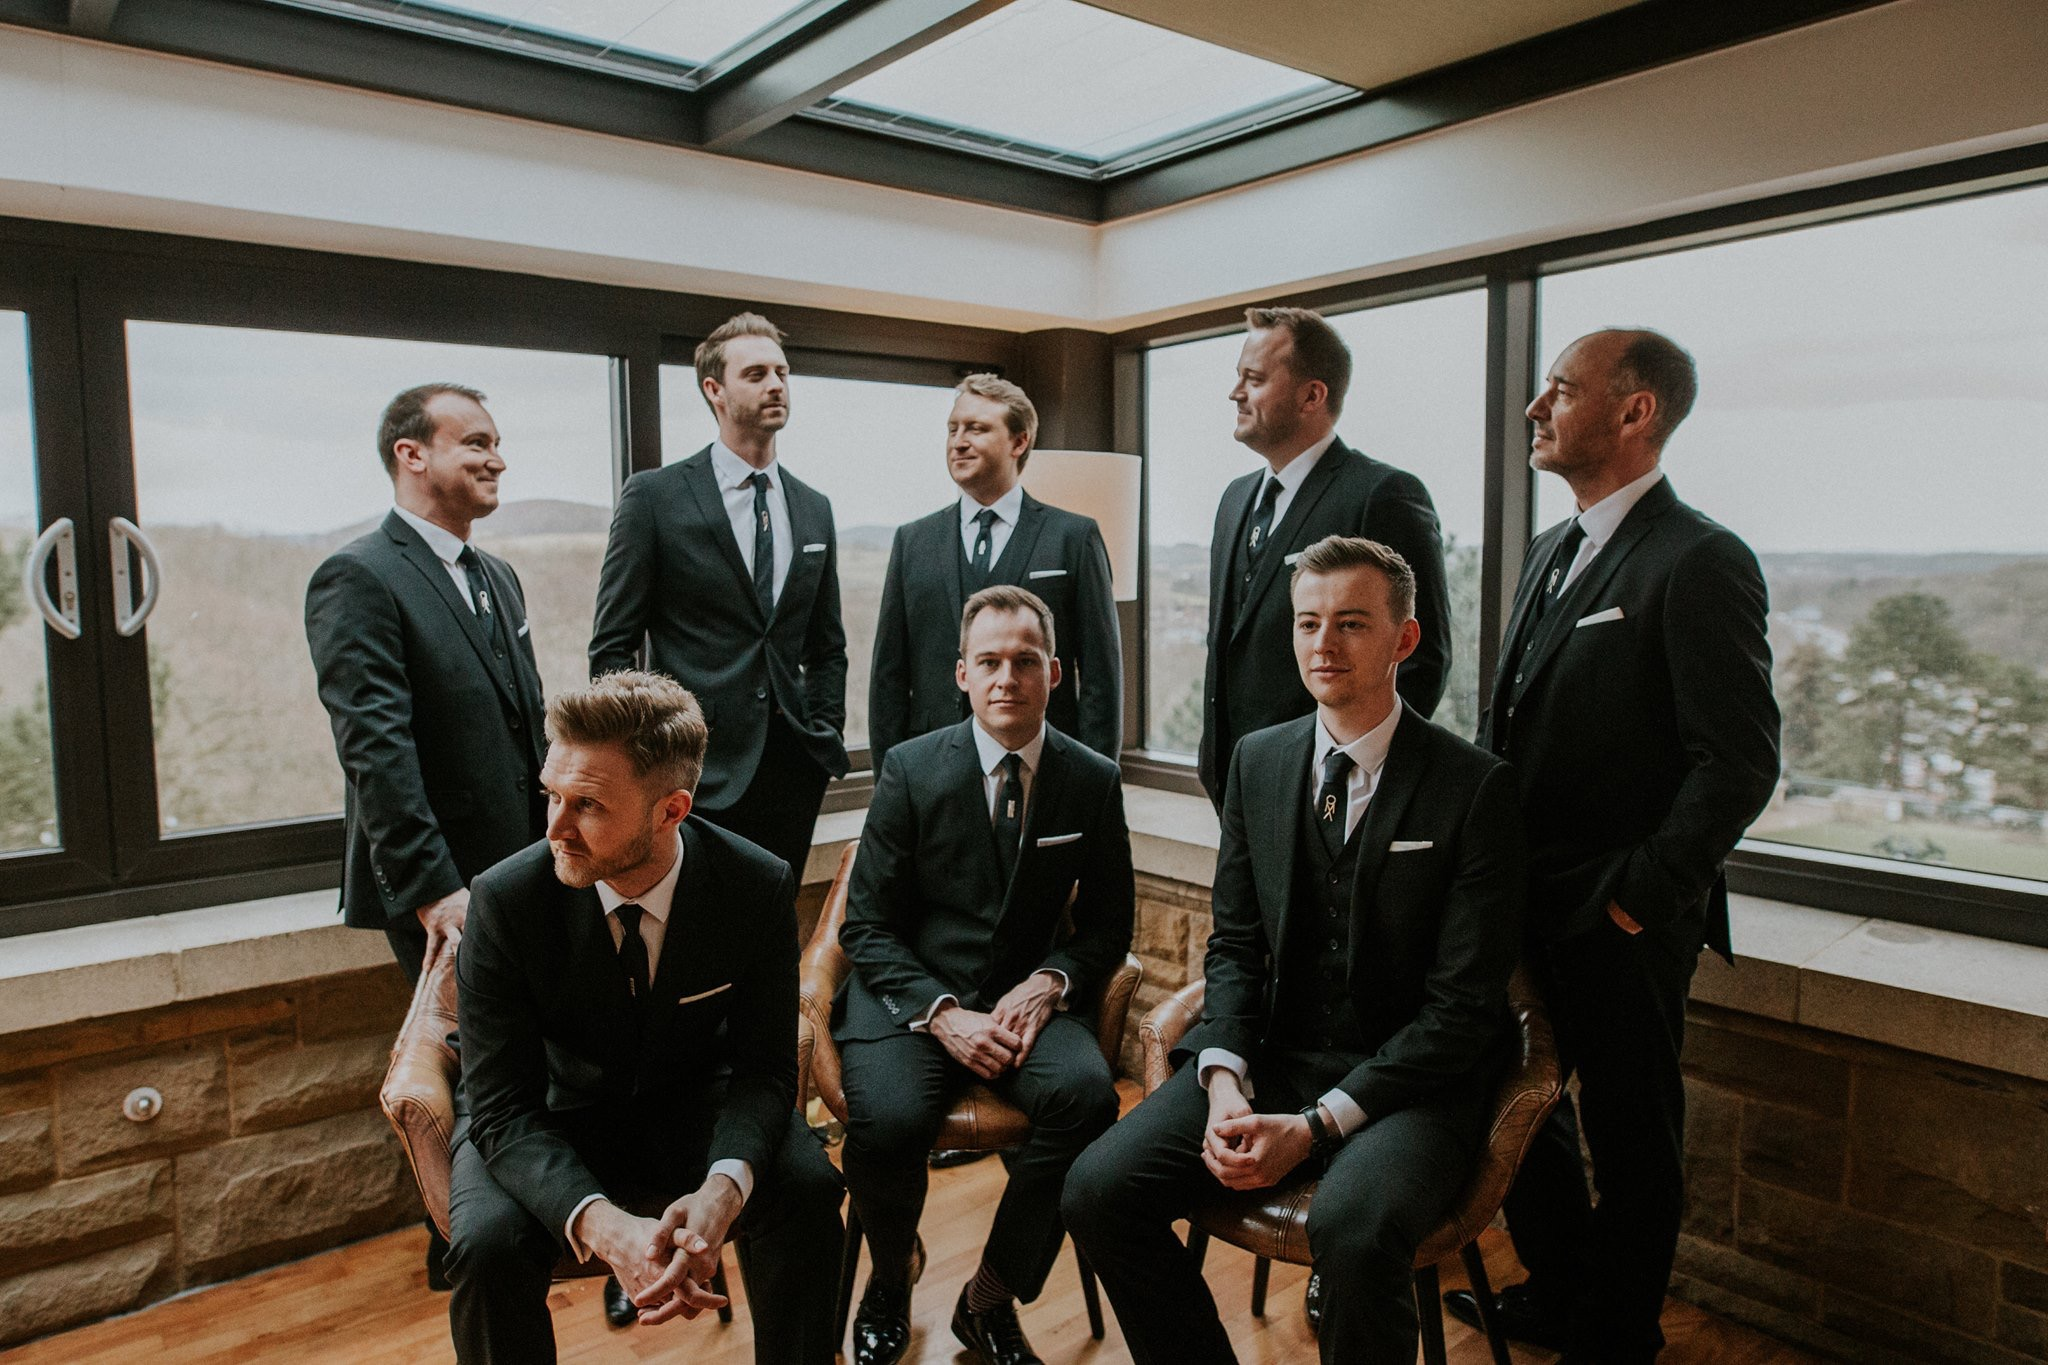 Only Men Aloud, 2018